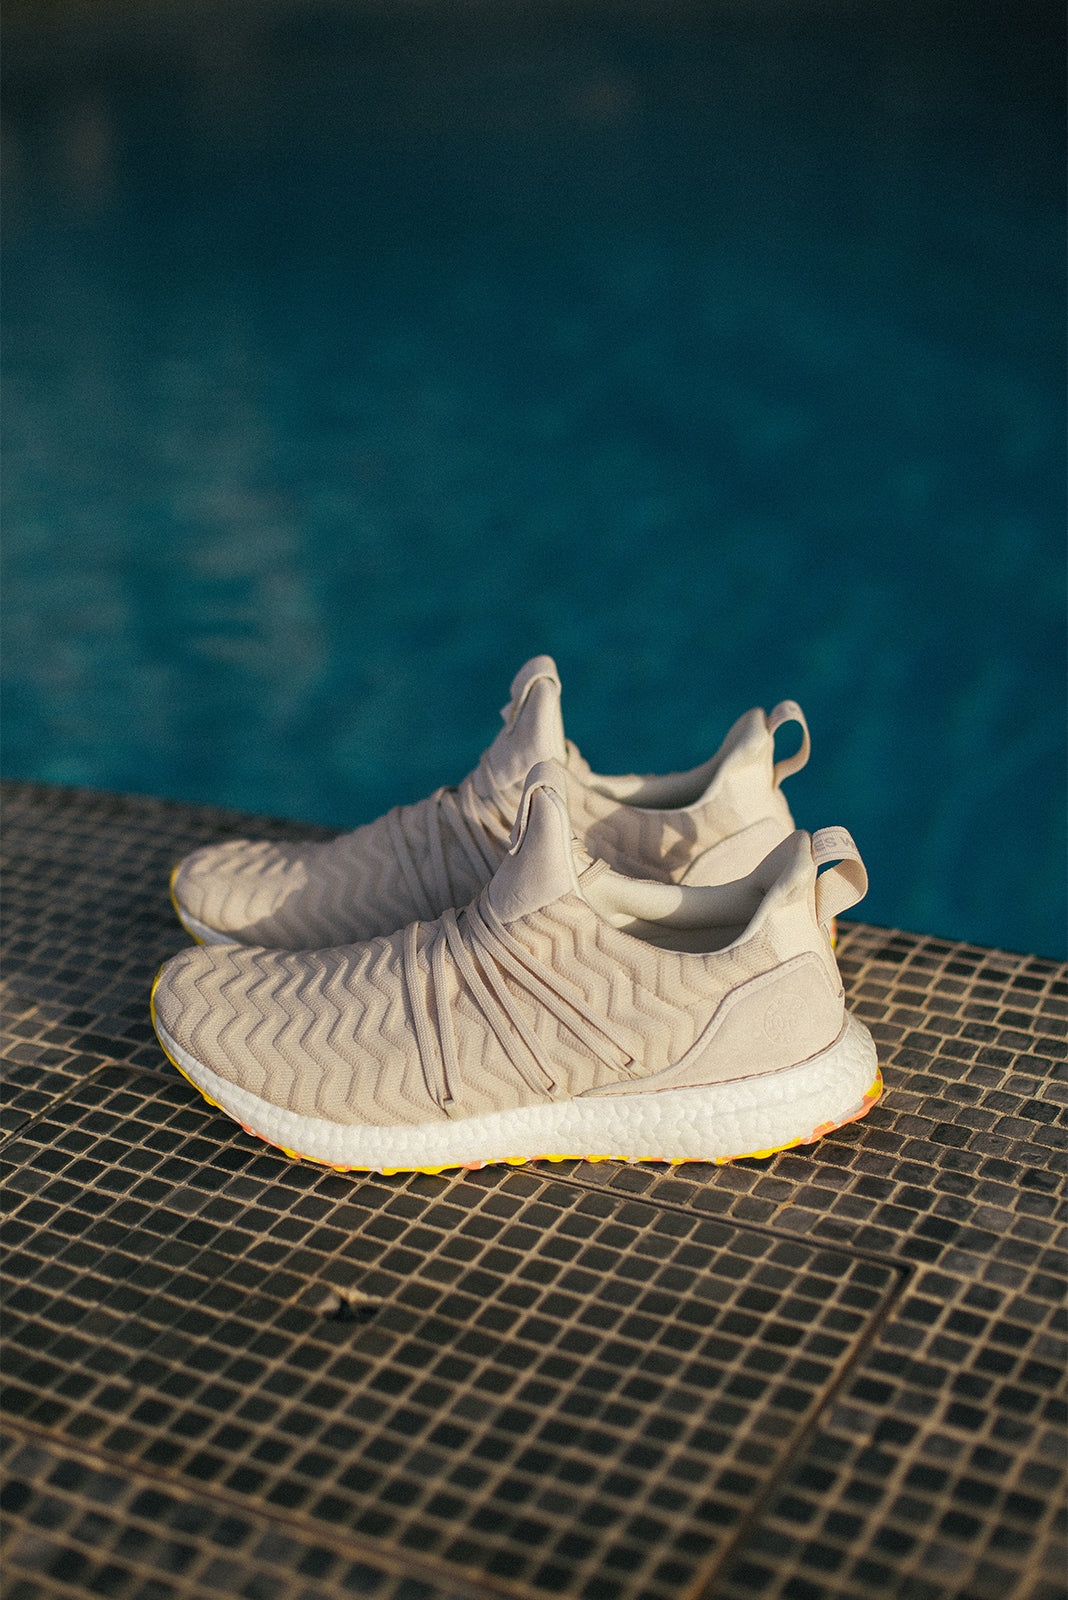 26eba545120 adidas Consortium Towel x AKOG DU9596 White Launch  Saturday 25th of  August. A Kind Of Guise ...